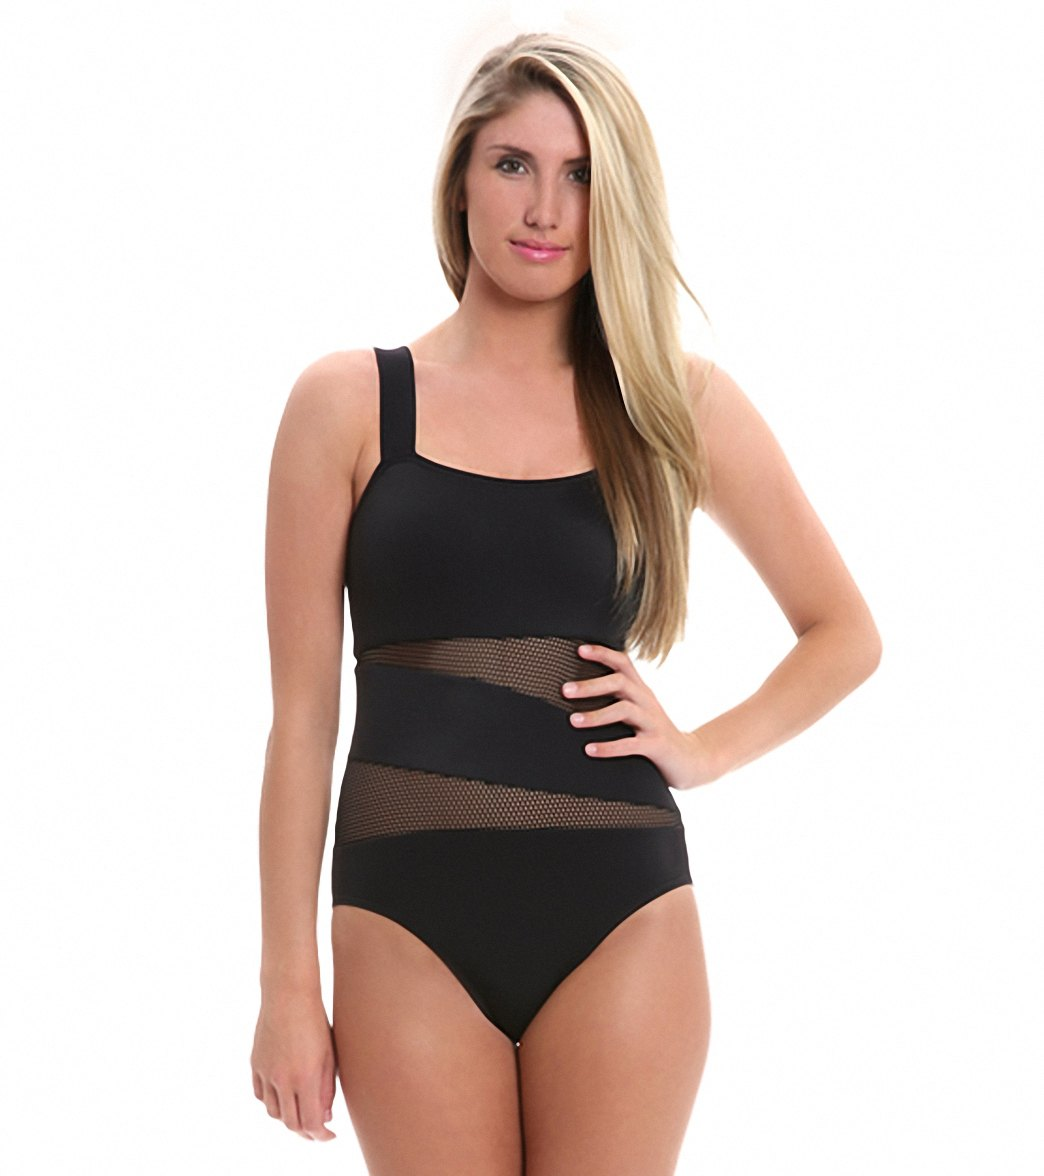 329edc4a9a257 ... DKNY Solid Mesh Splice One Piece Swimsuit. Play Video. MODEL  MEASUREMENTS